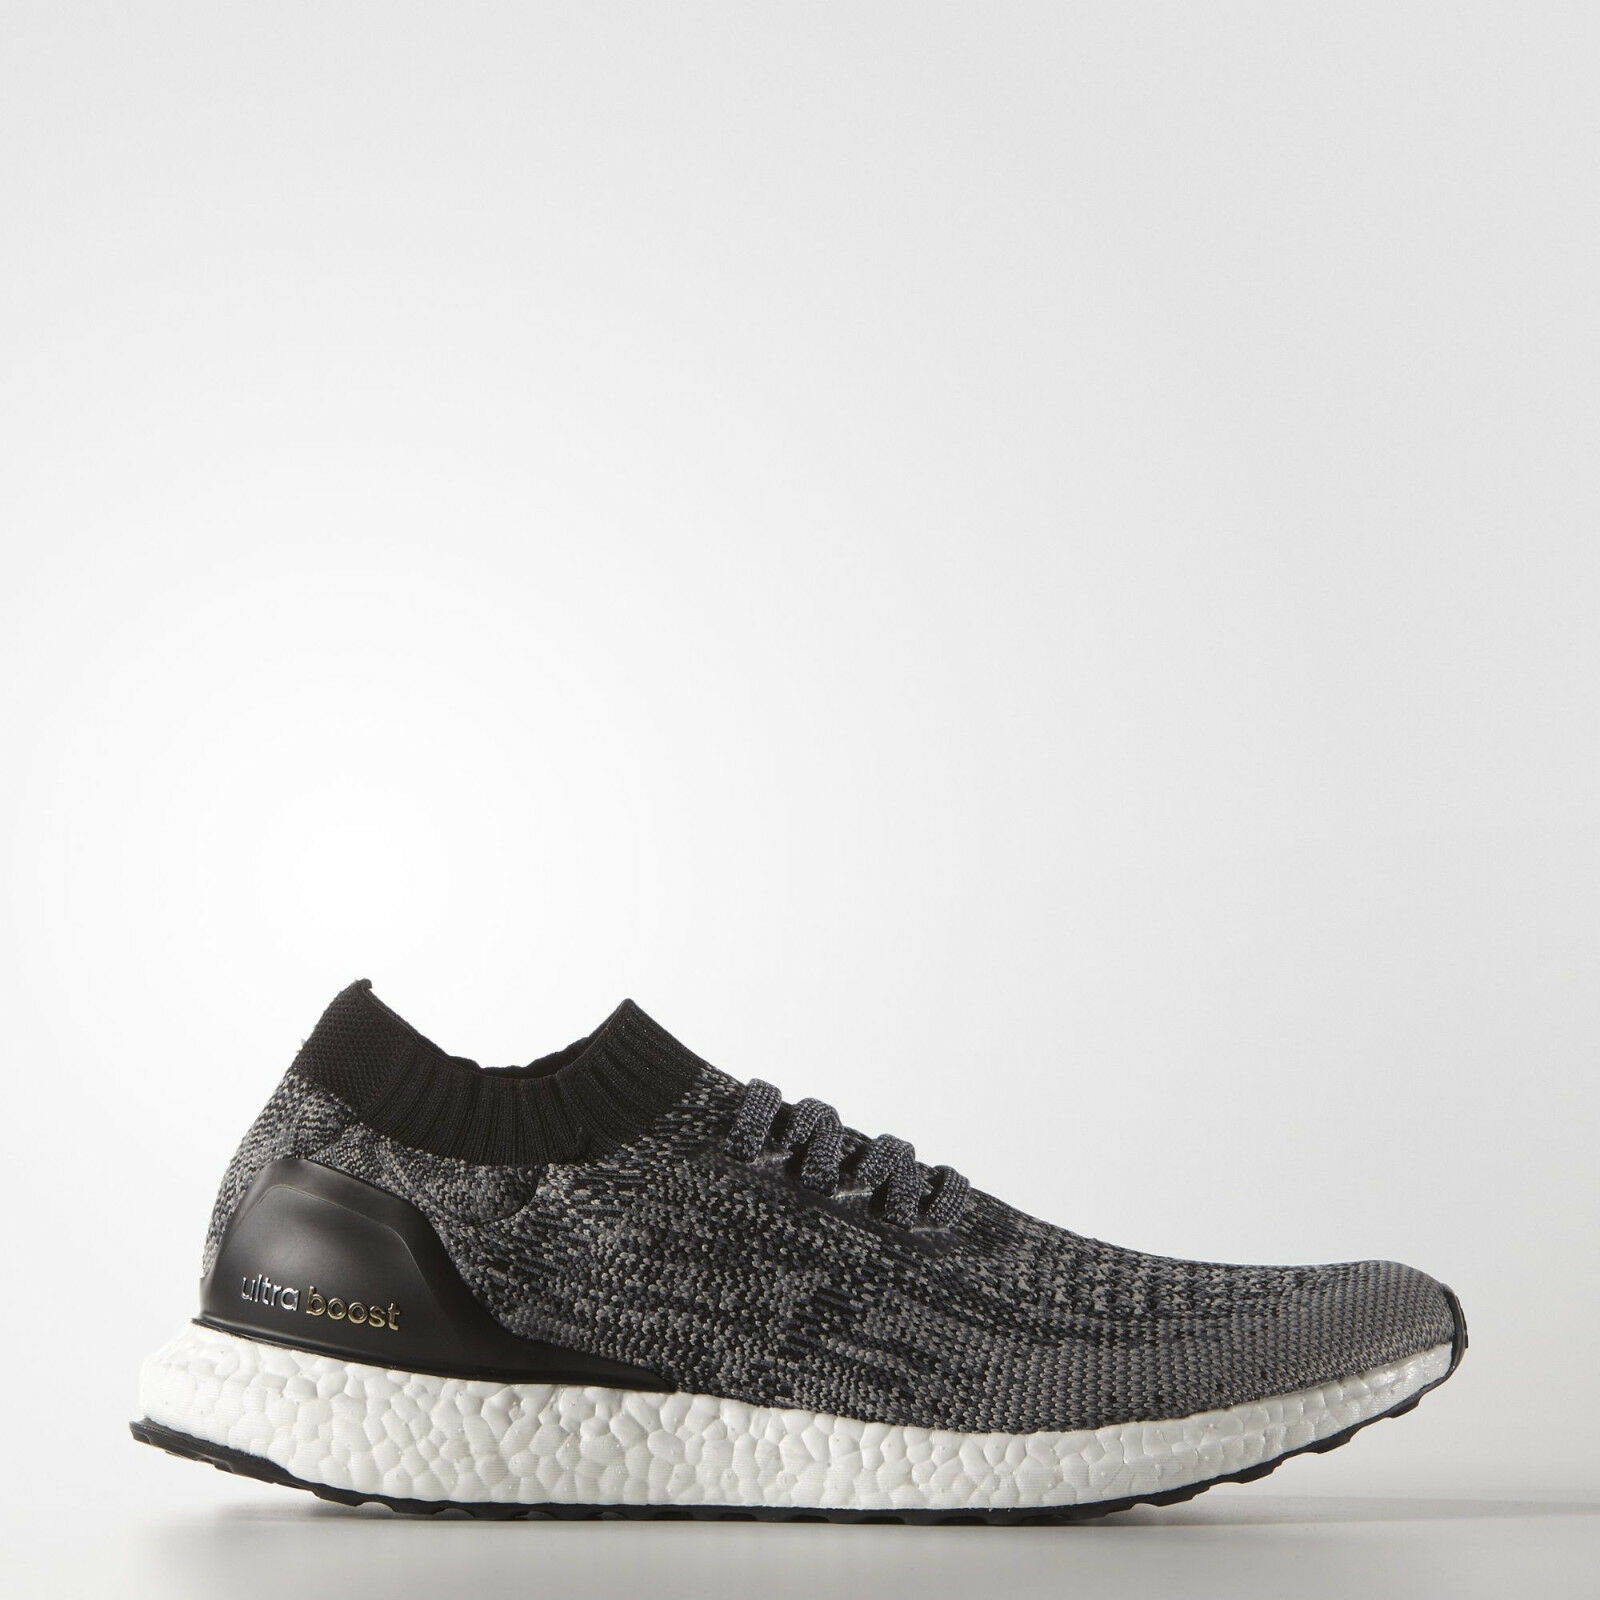 adidas Ultra Boost Uncaged Black Running Shoes Grey Trainers BB3900 UltraBOOST